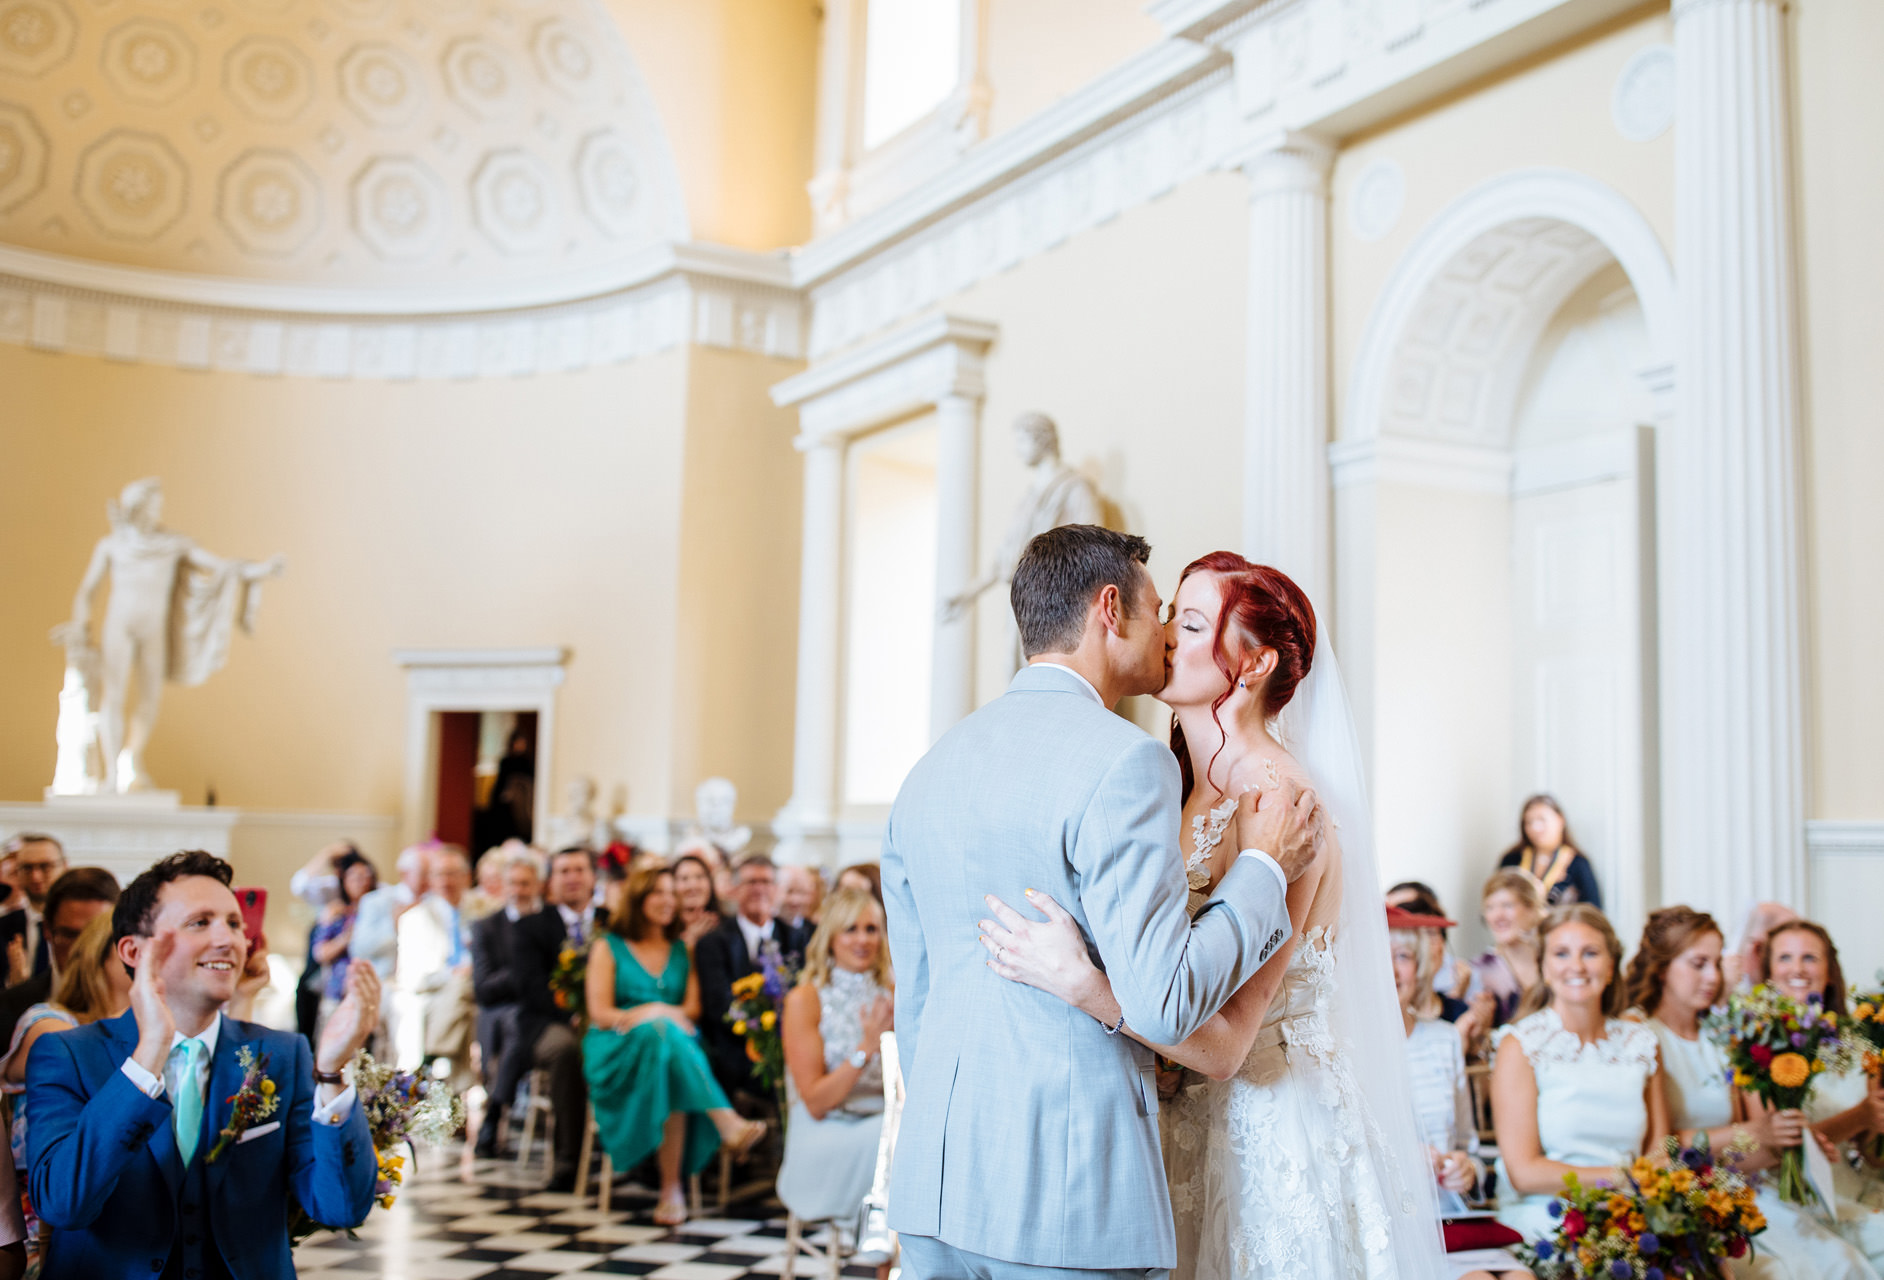 bride and groom share first kiss as husband and wife in grand room at syon park